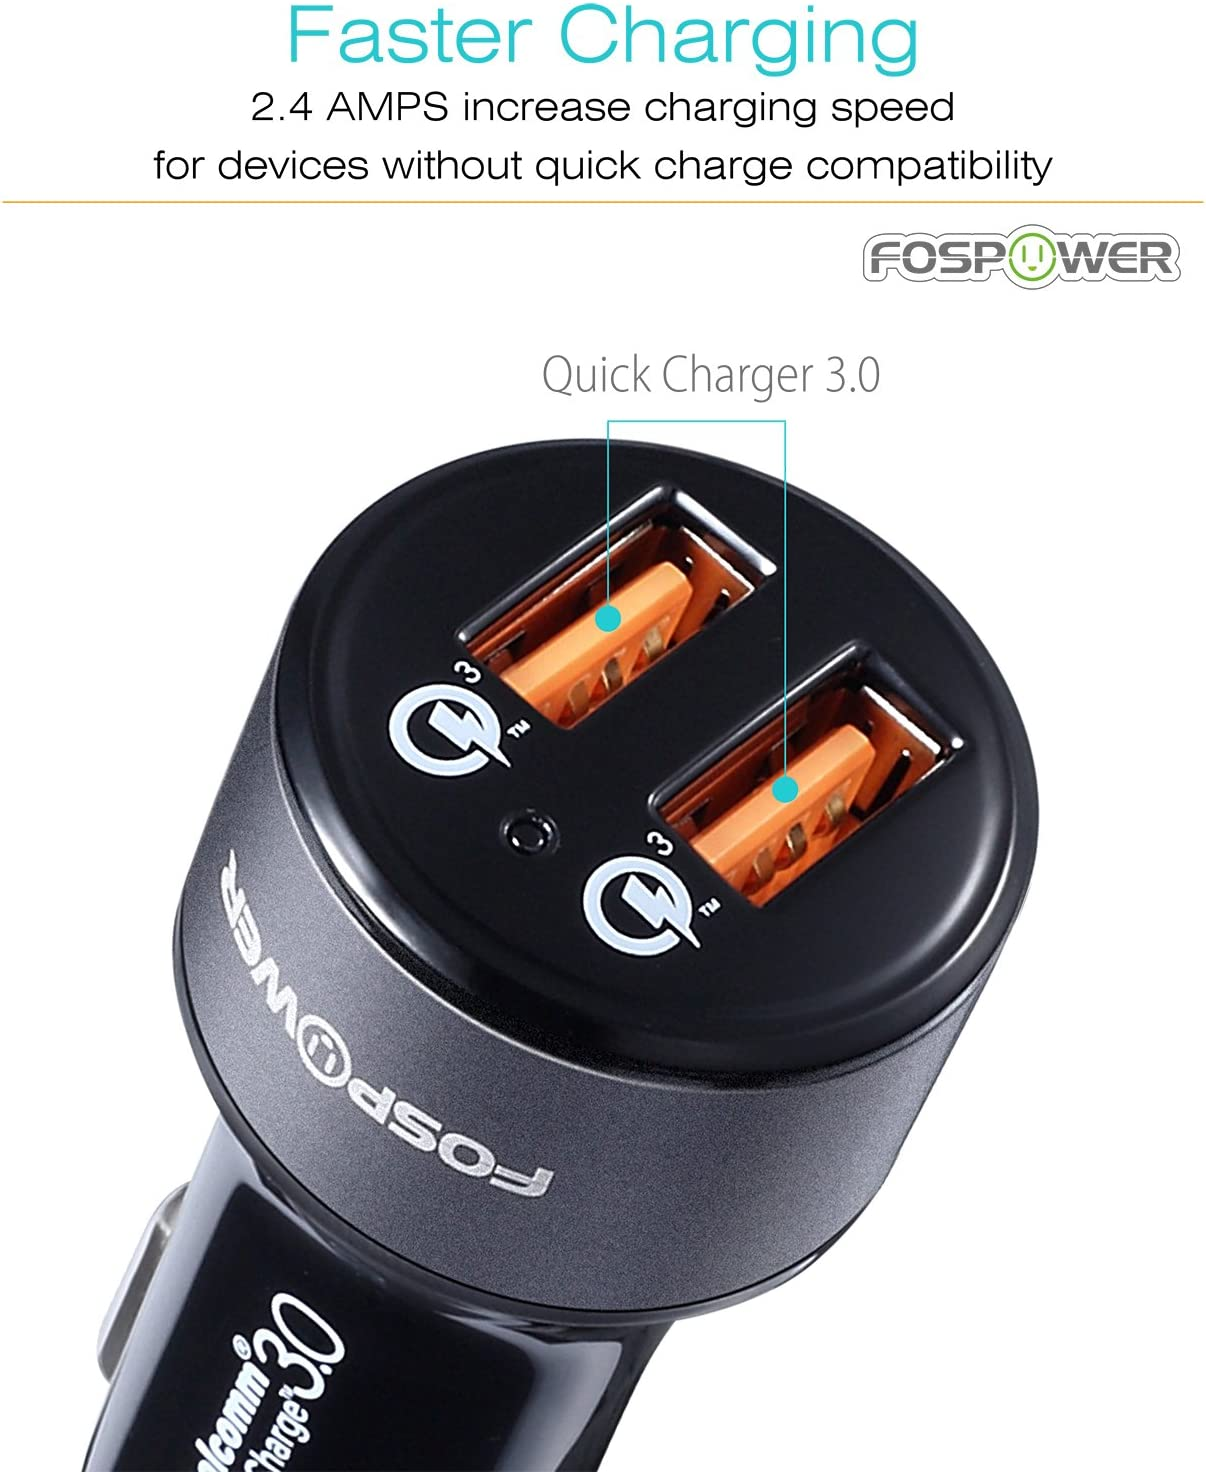 and More Samsung Galaxy S20 FosPower USB Car Charger UL Listed 36W Fast Charging Qualcomm 3.0 Quick Charge Dual USB Smart Ports with LED Light Compatible with iPhone 11 Pro Max Google Pixel 4 XL